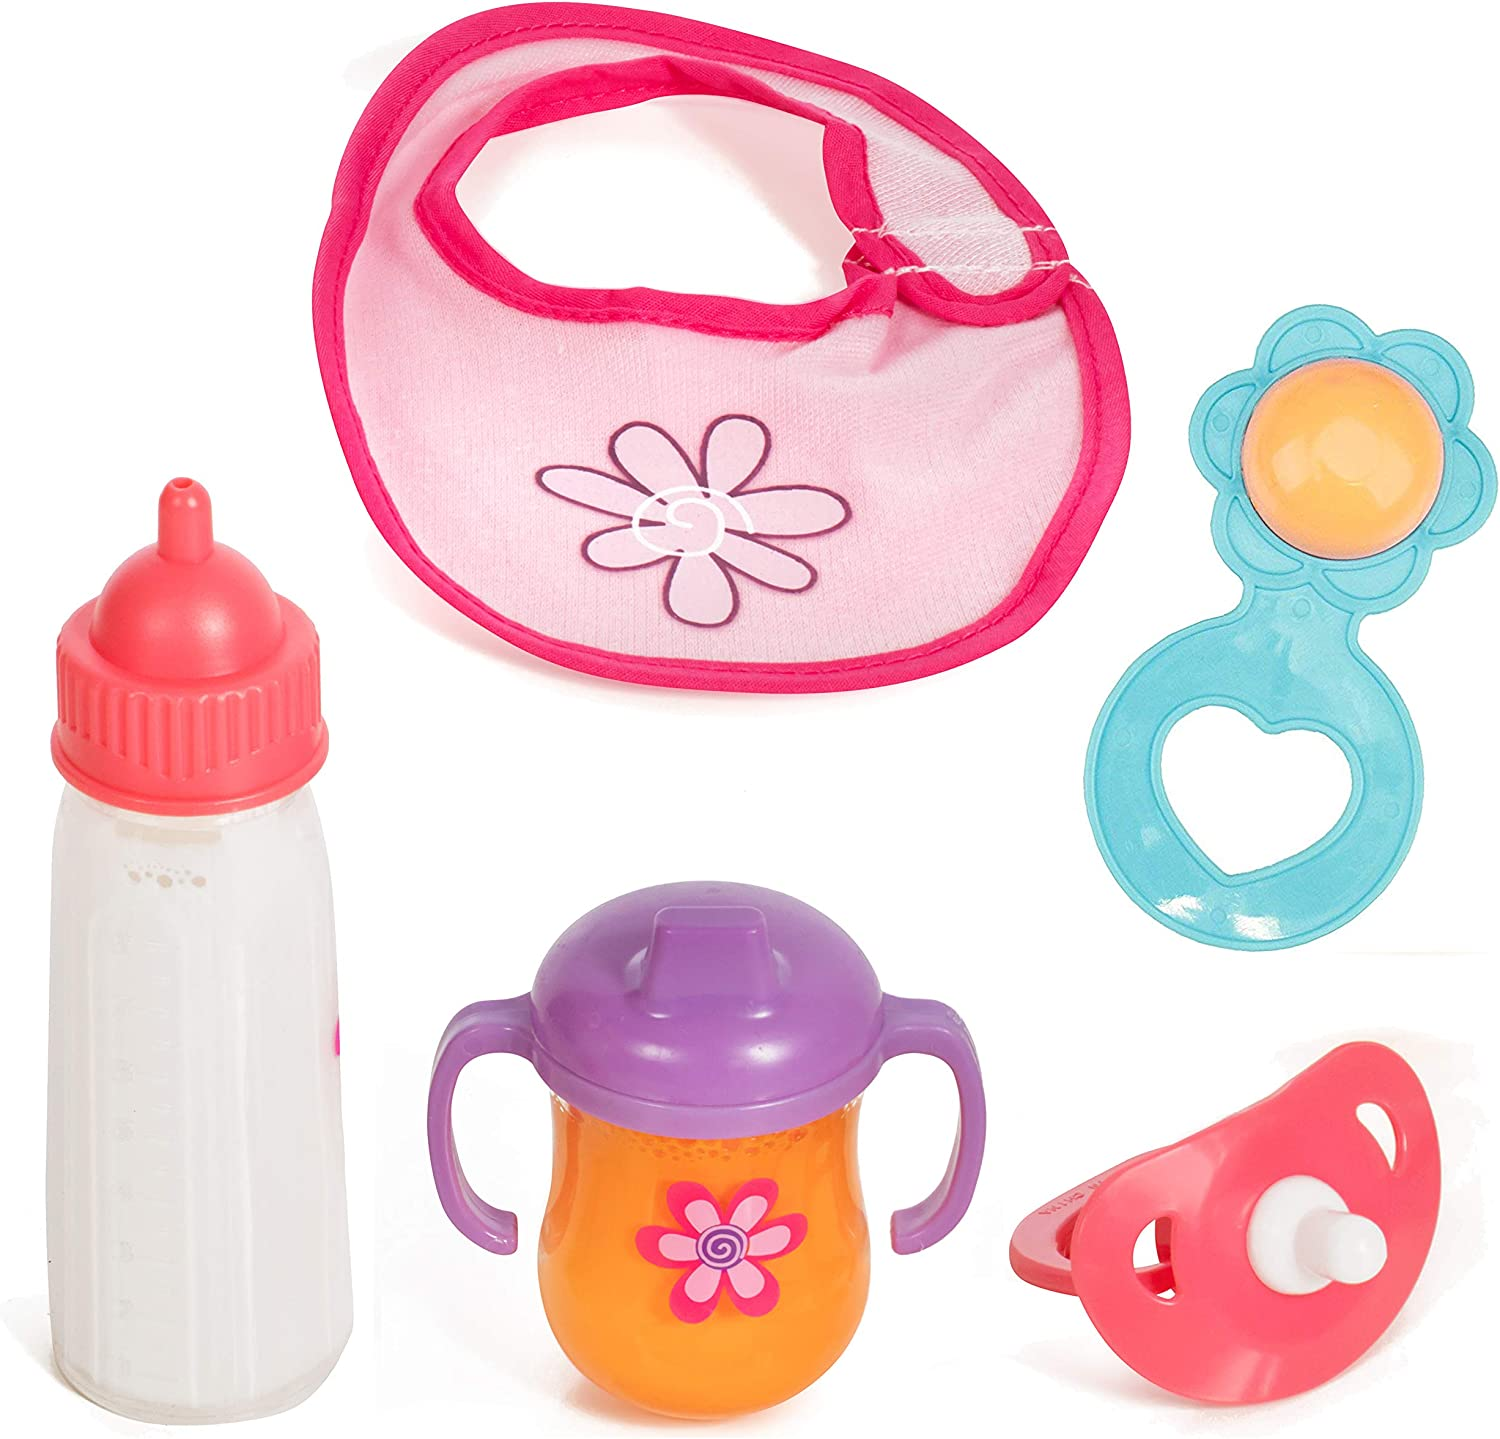 Mommy & Me Baby Doll 5Piece Feeding Set - Includes A Magic Disappearing Milk Bottle & Sippy Cup